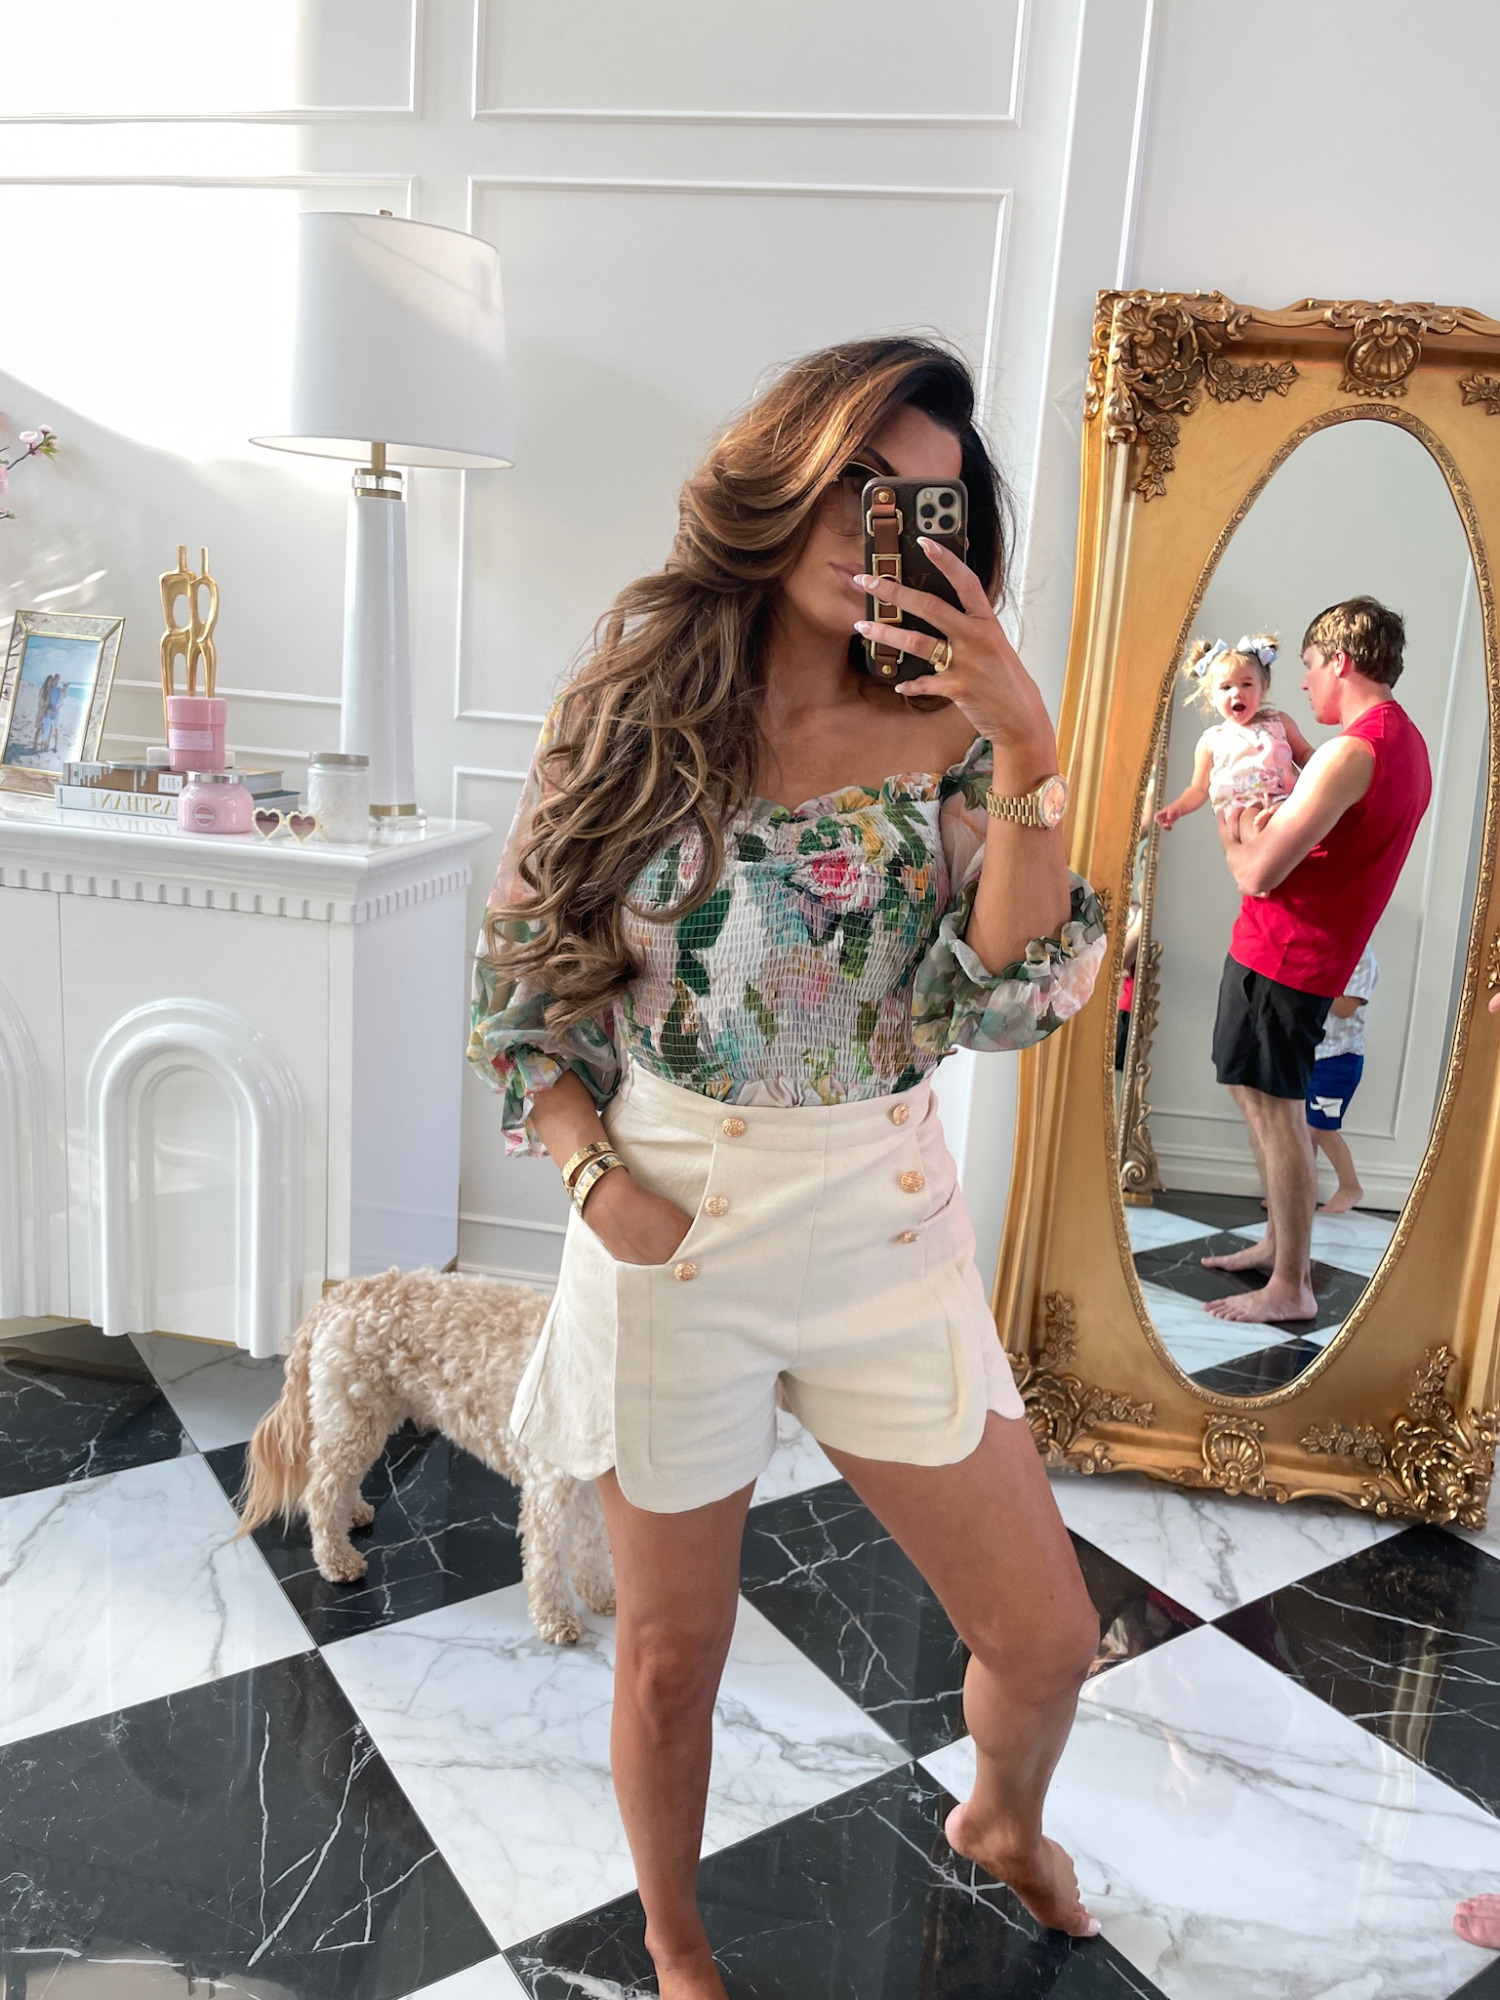 Emily ann gemma, floral blouse, cream shorts with gold buttons, white shorts, summer outfit ideas, Zimmerman dupe top | June Instagram Recap by popular US fashion blog, The Sweetest Thing: image of Emily Gemma wearing a floral print off the should top and high waisted scallop shorts.